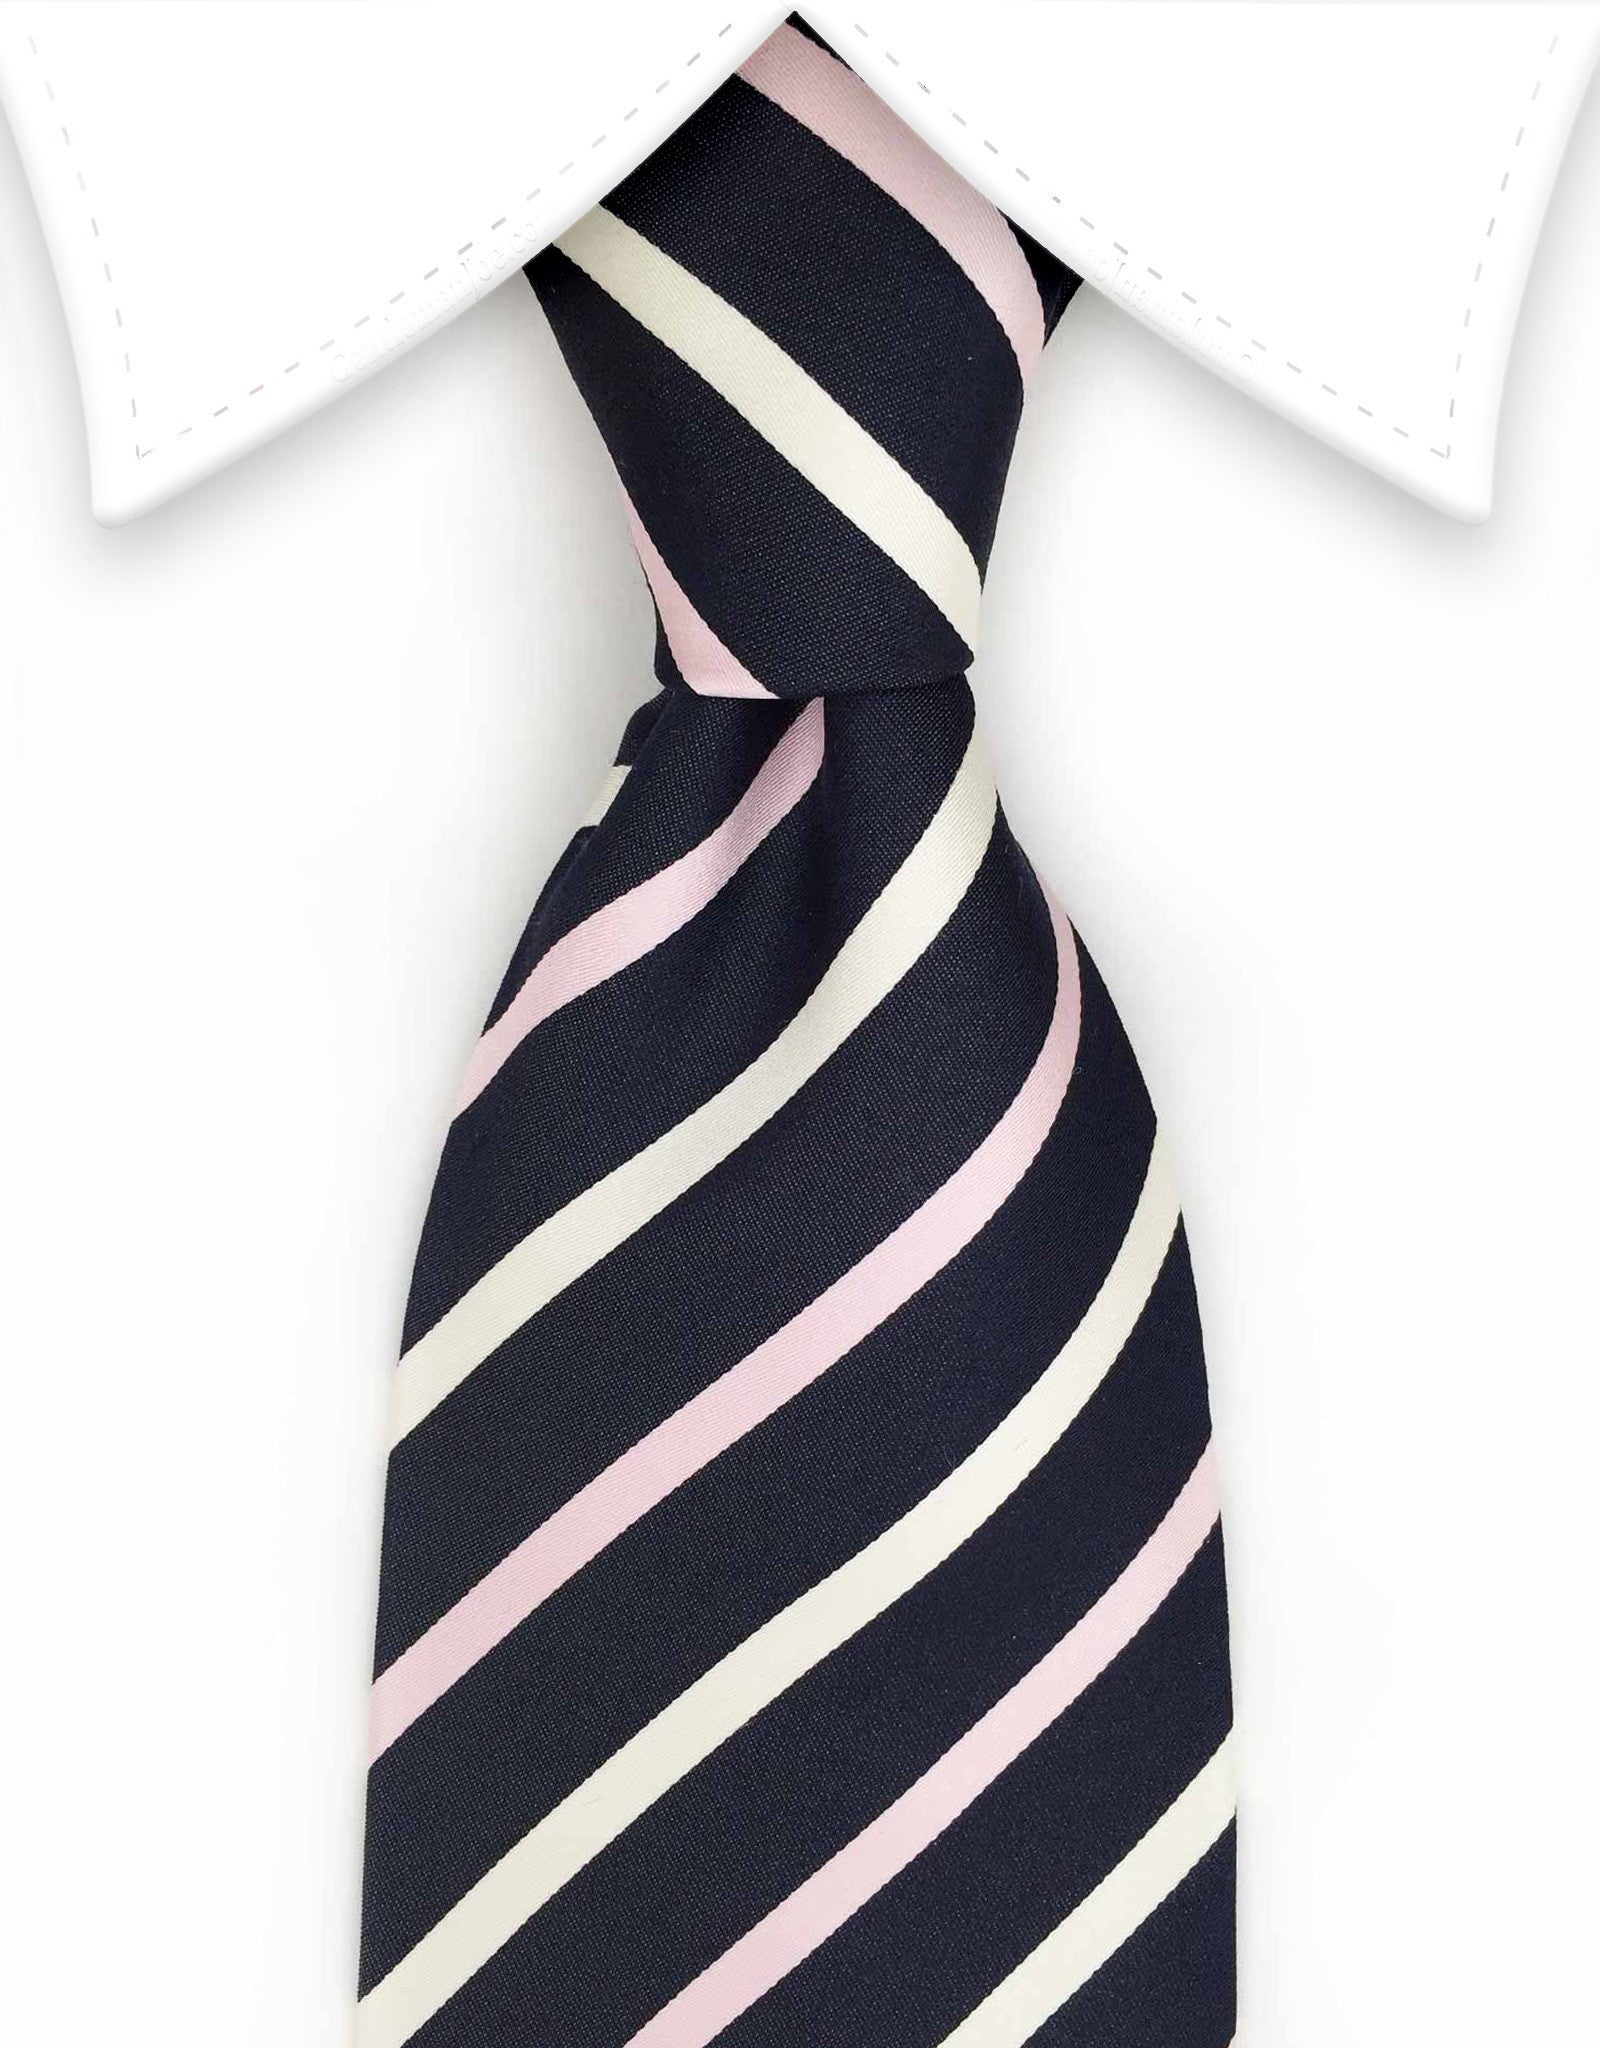 Navy, pink, white striped tie